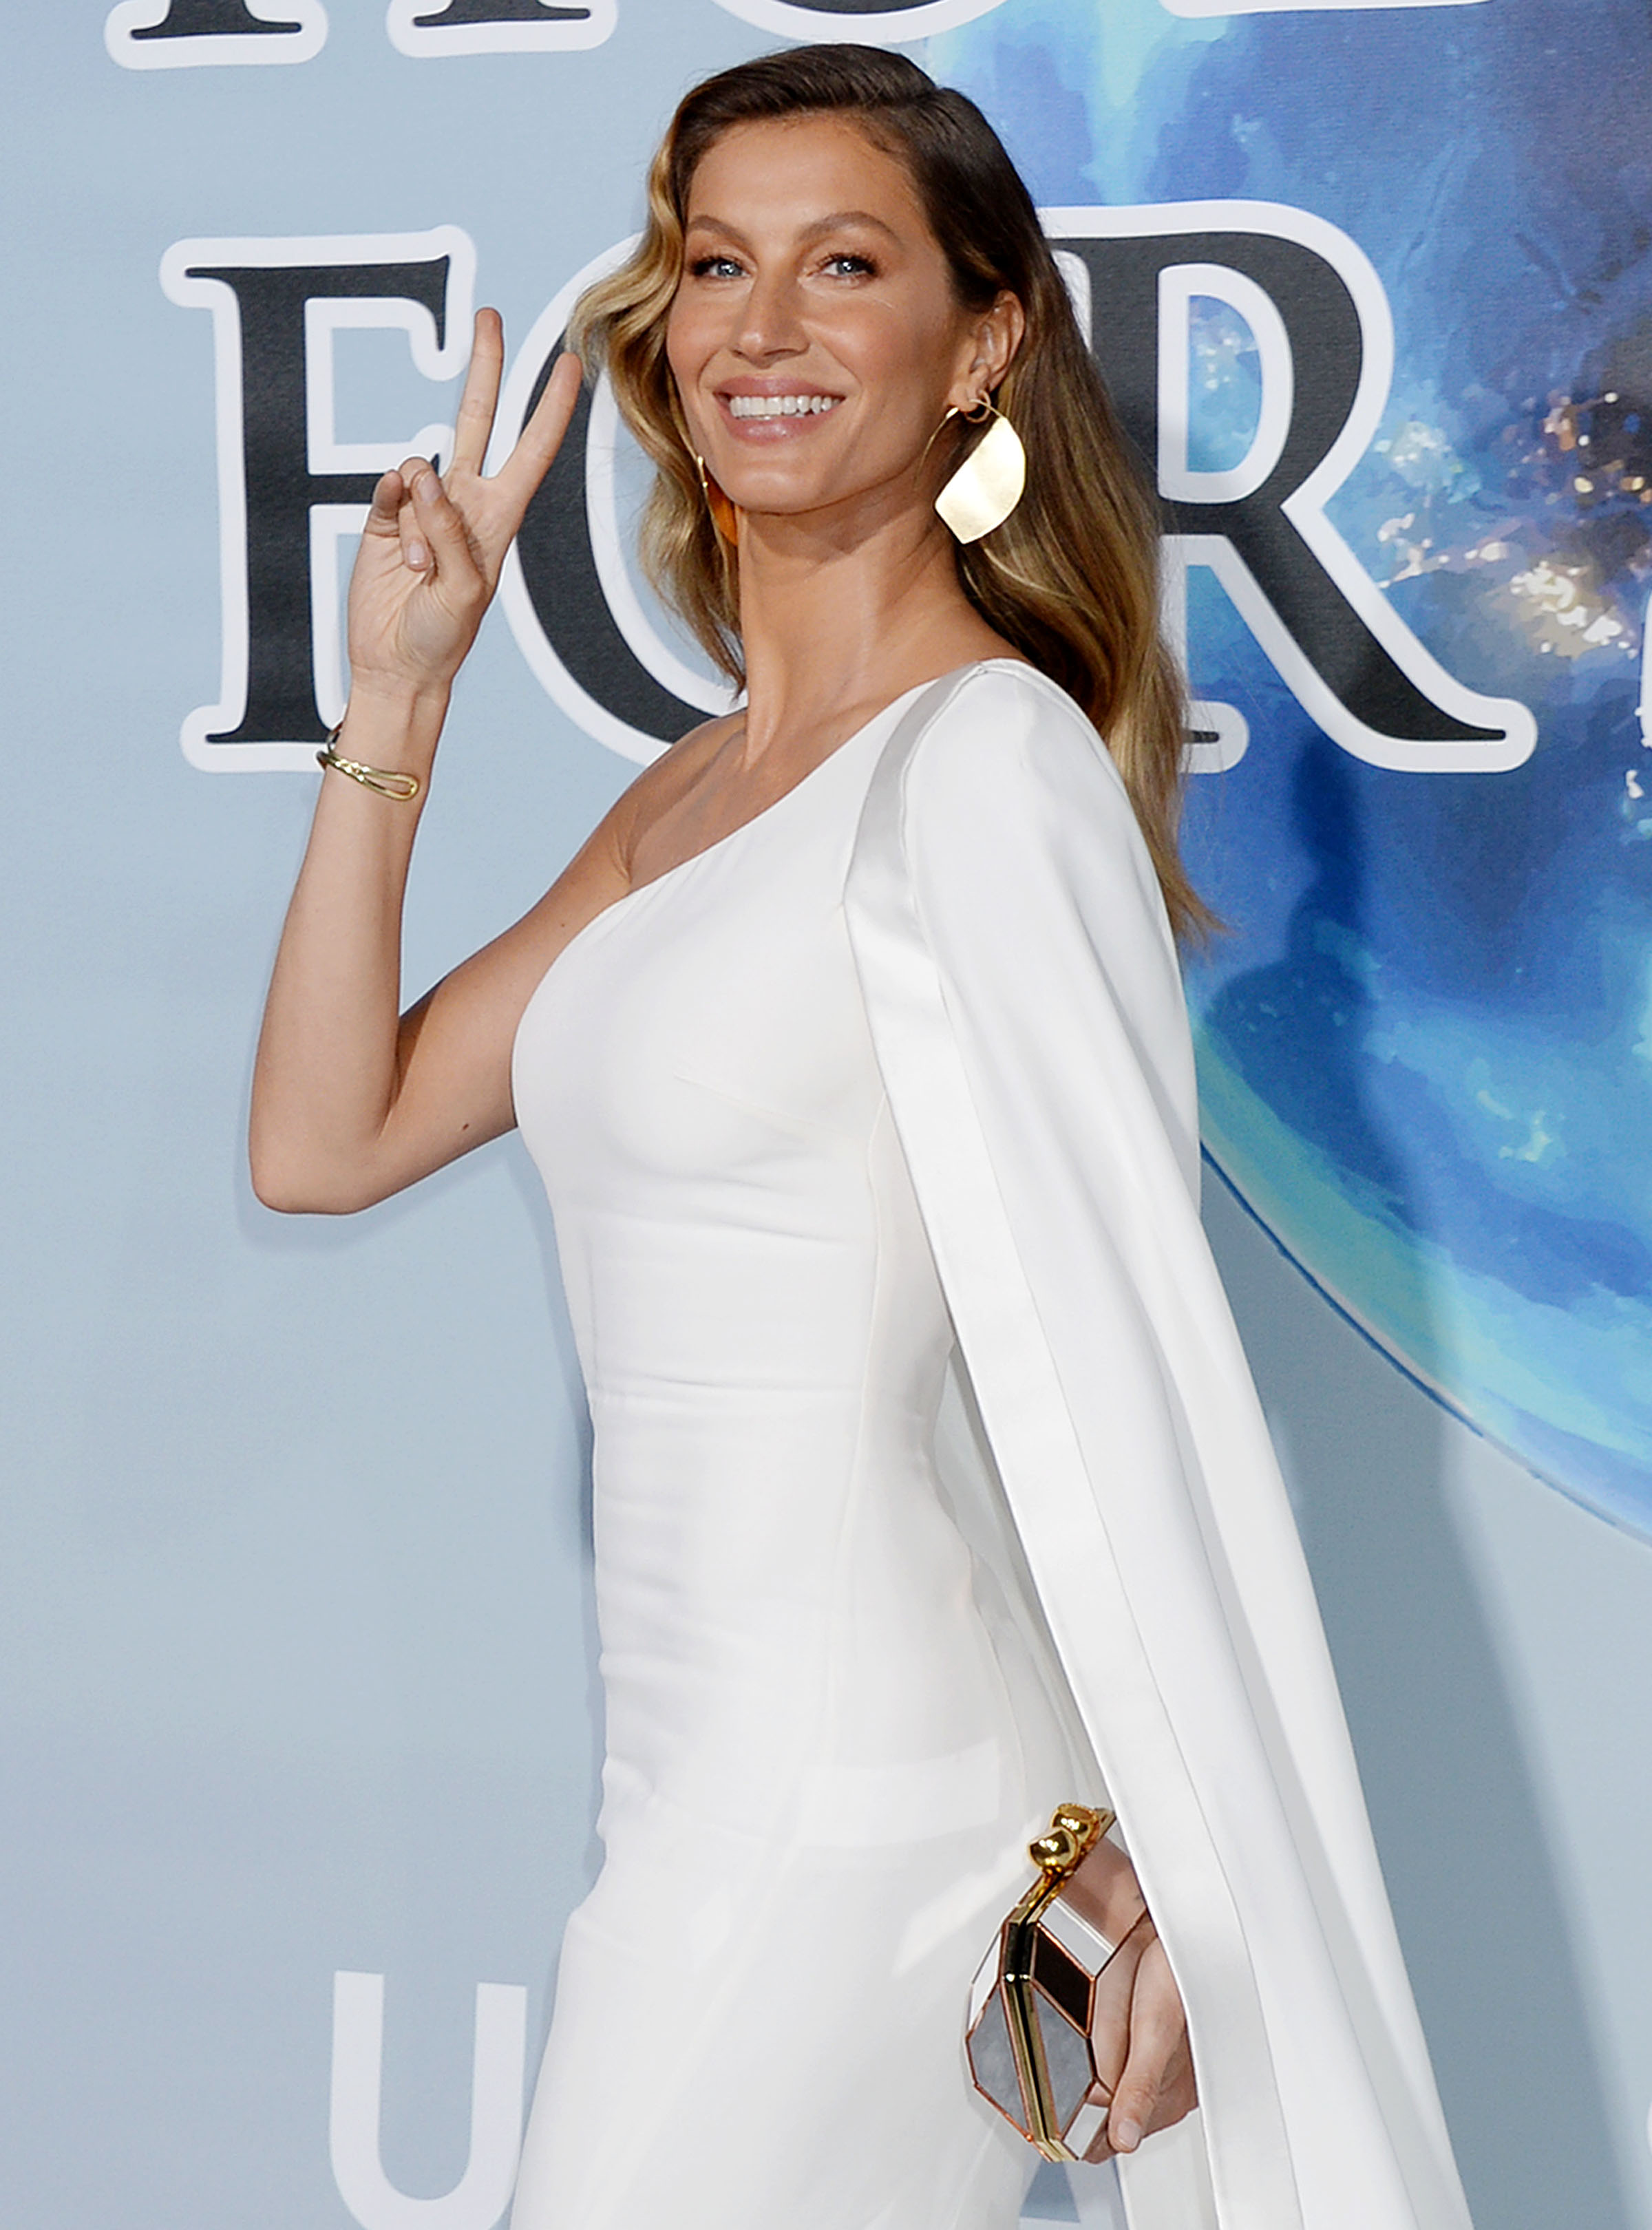 Gisele Bündchen Talks Importance of Being 'Present' for Her Family: It 'Leads to Fulfillment'